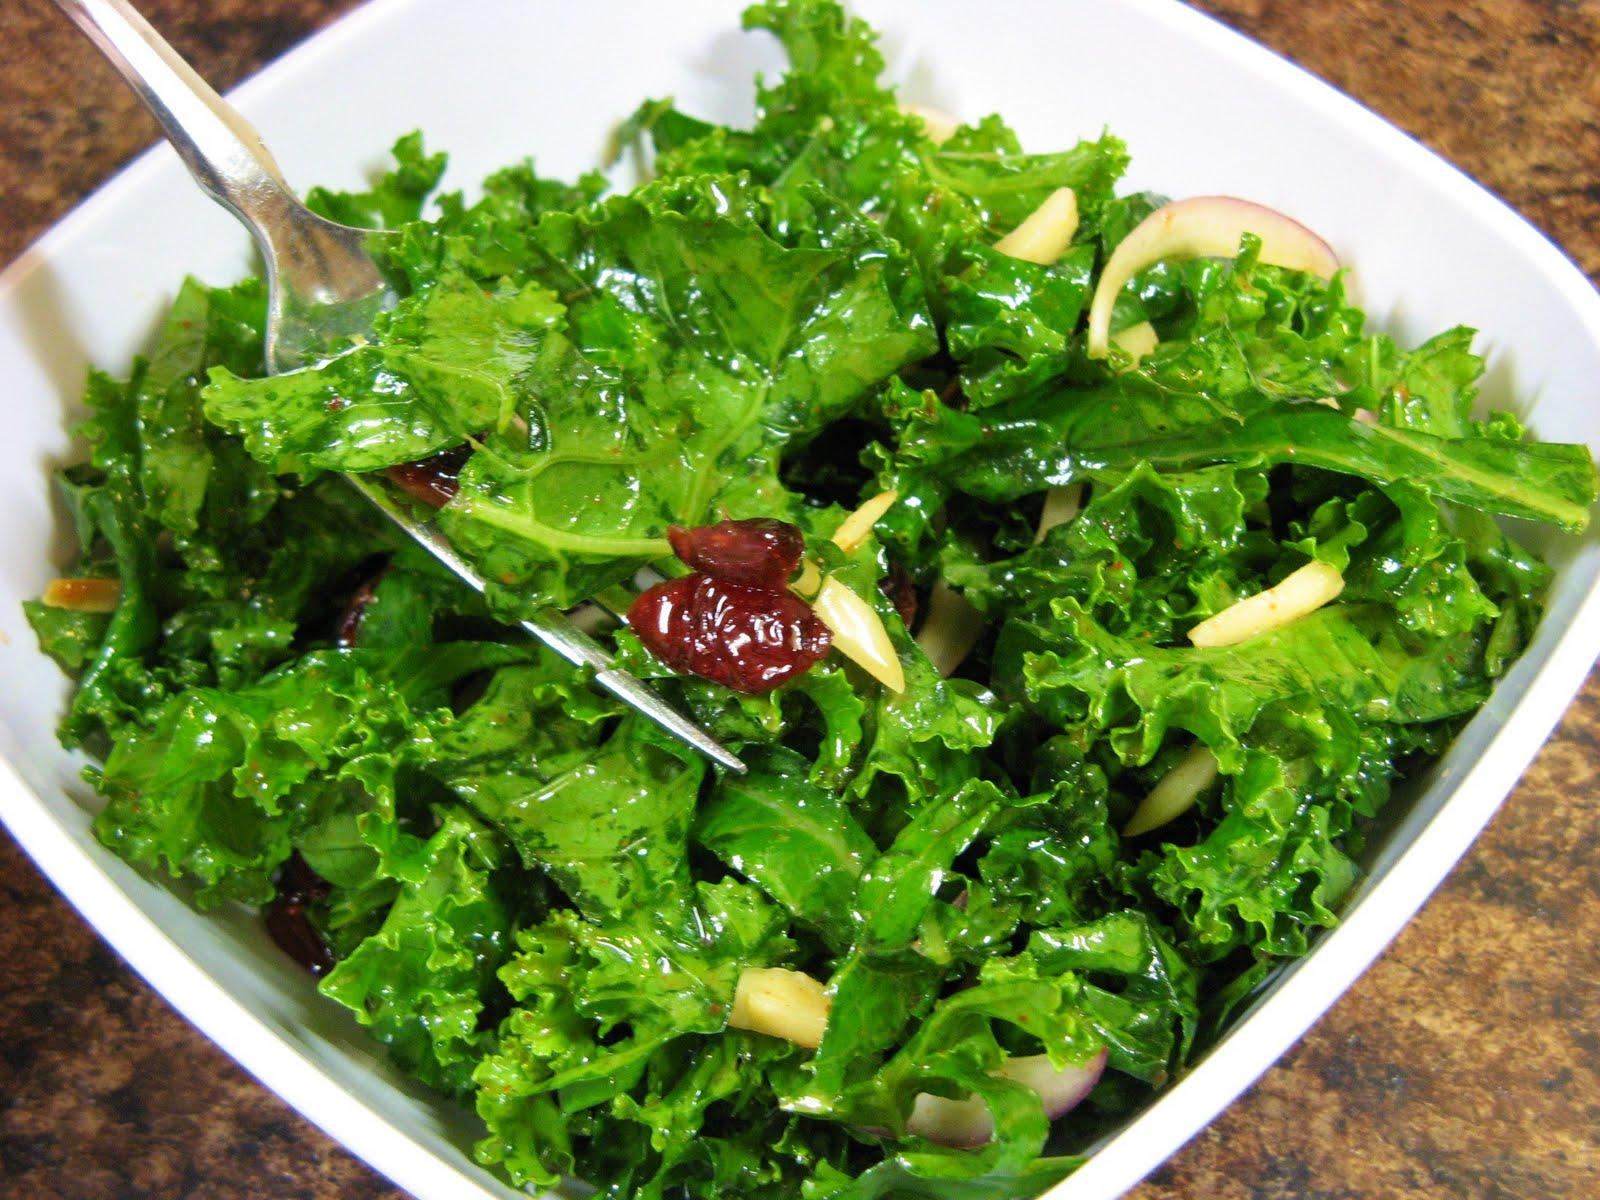 The Well-Fed Newlyweds: Raw Kale Salad with Almonds and Cranberries